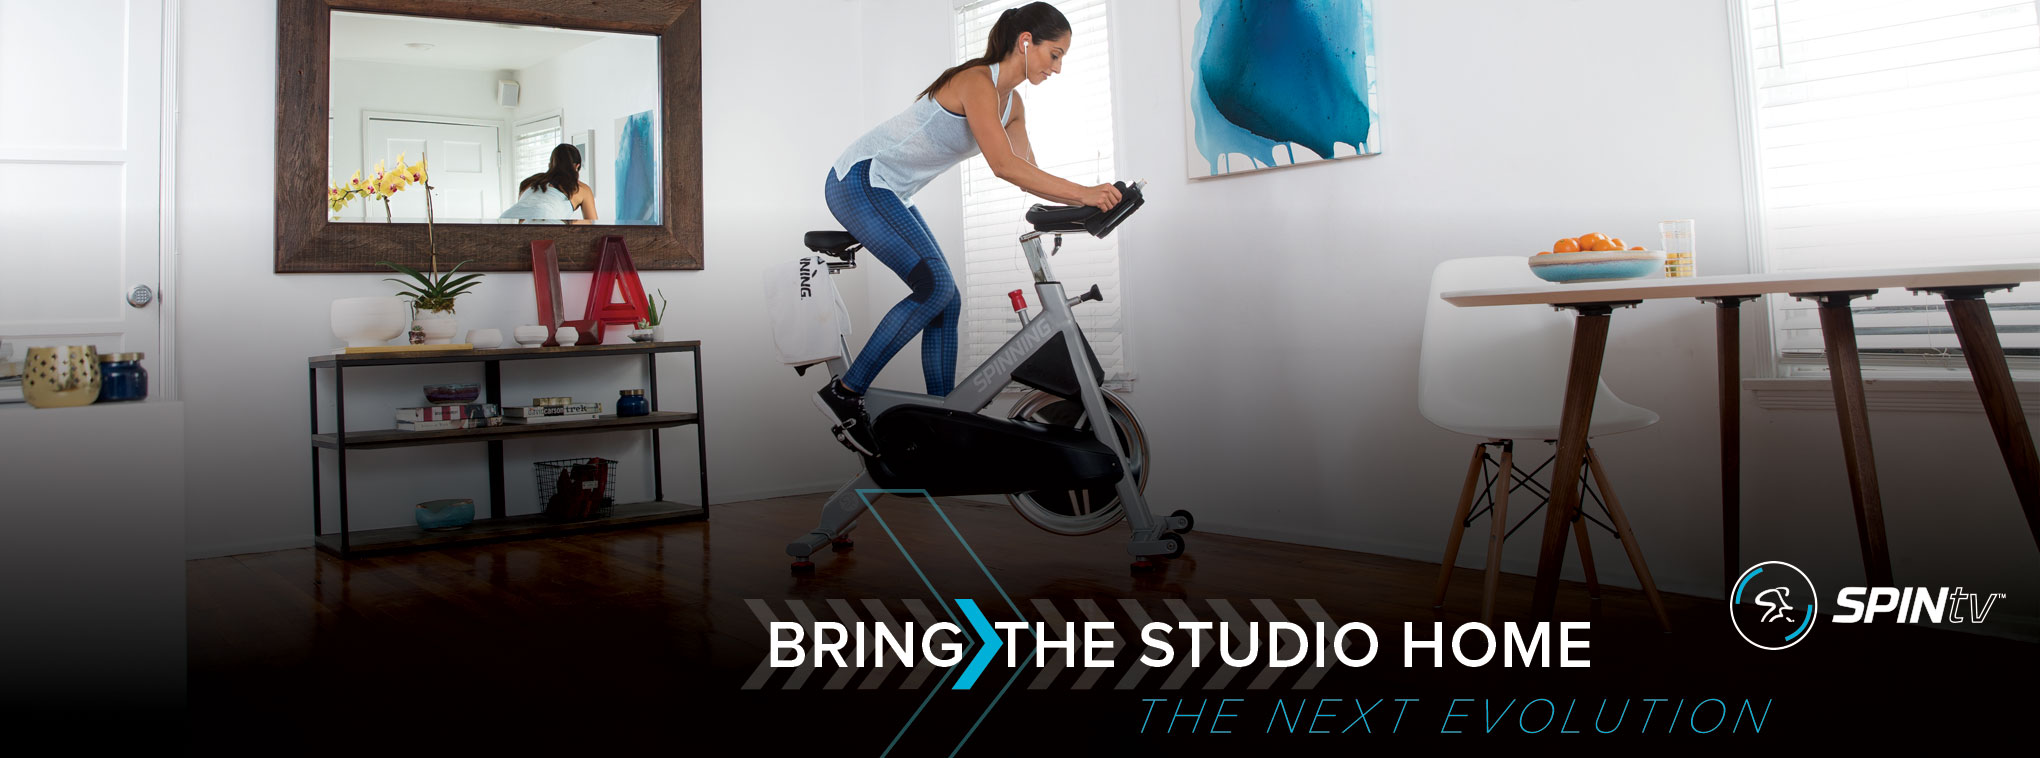 Bring the Studio Home - The Next Evolution